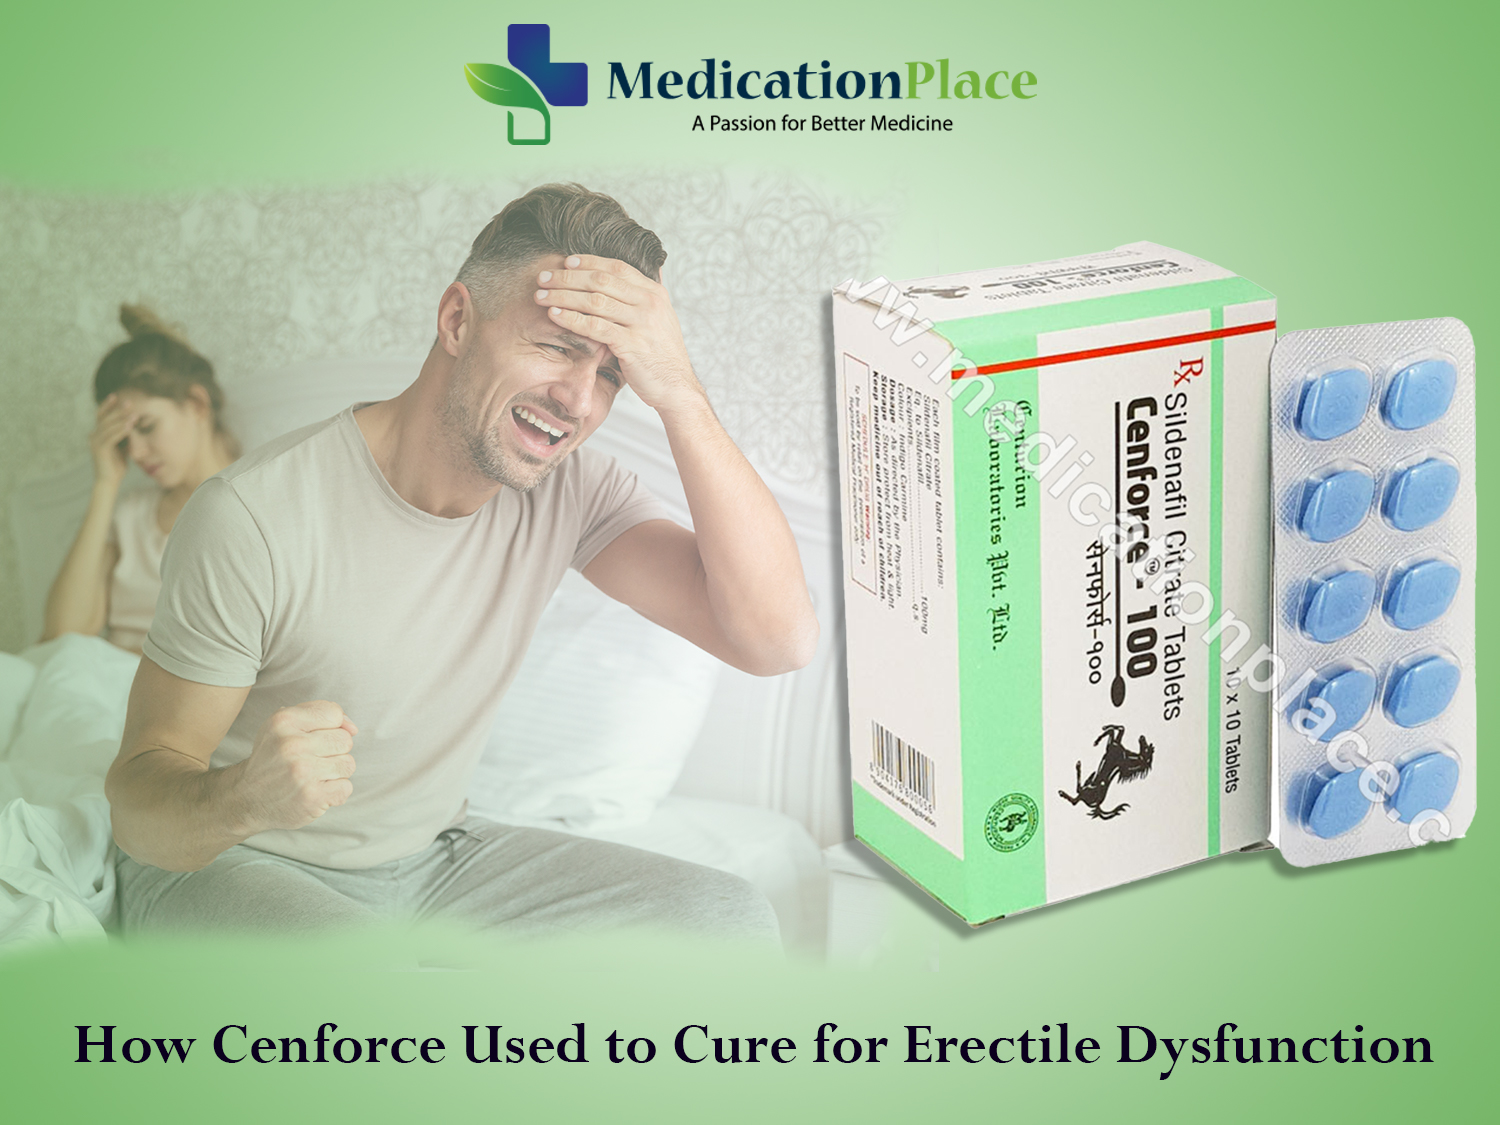 How Cenforce Used to Cure for Treating Erectile Dysfunction - Medication Place